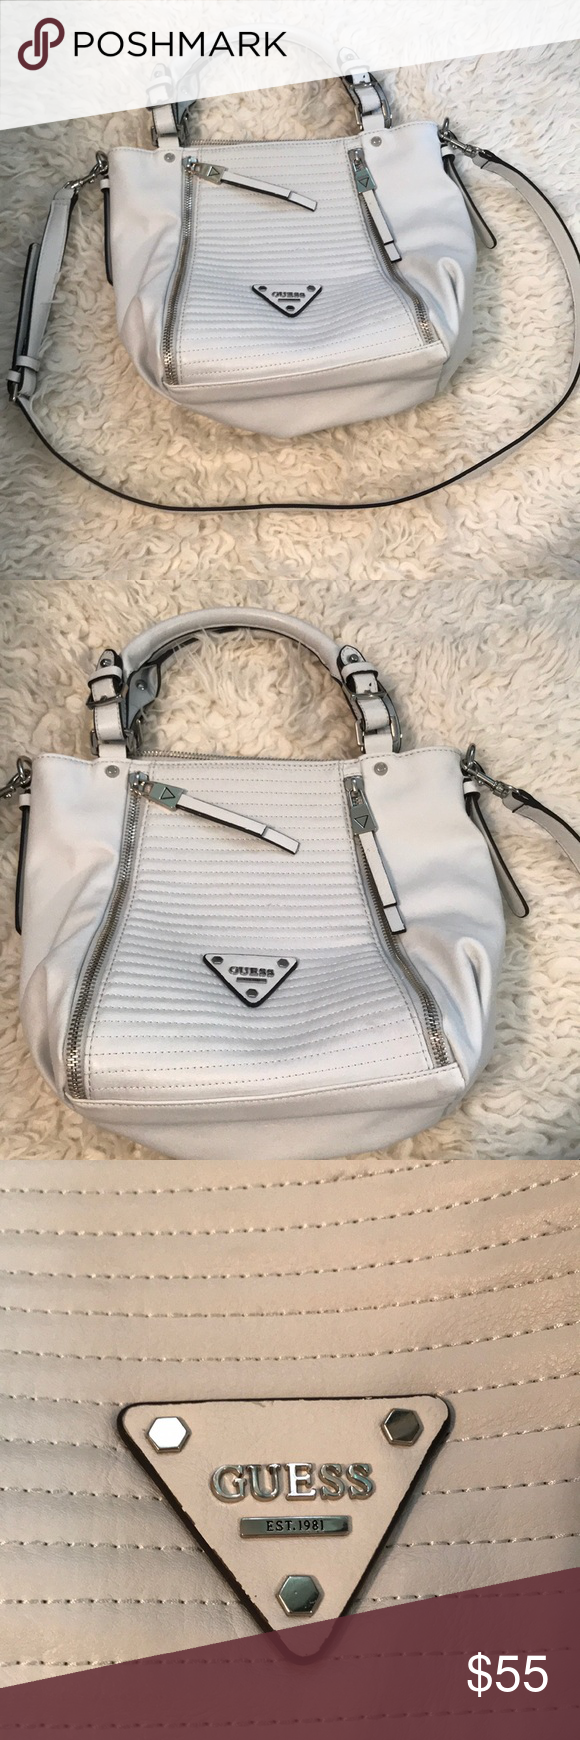 White Guess Purse White Guess Purse Comes With Crossbody Strap Front Zipper  Pockets Are For Show They Unzip But Have No Pocket Like Brand New Used  Twice ... f3fbc2caec